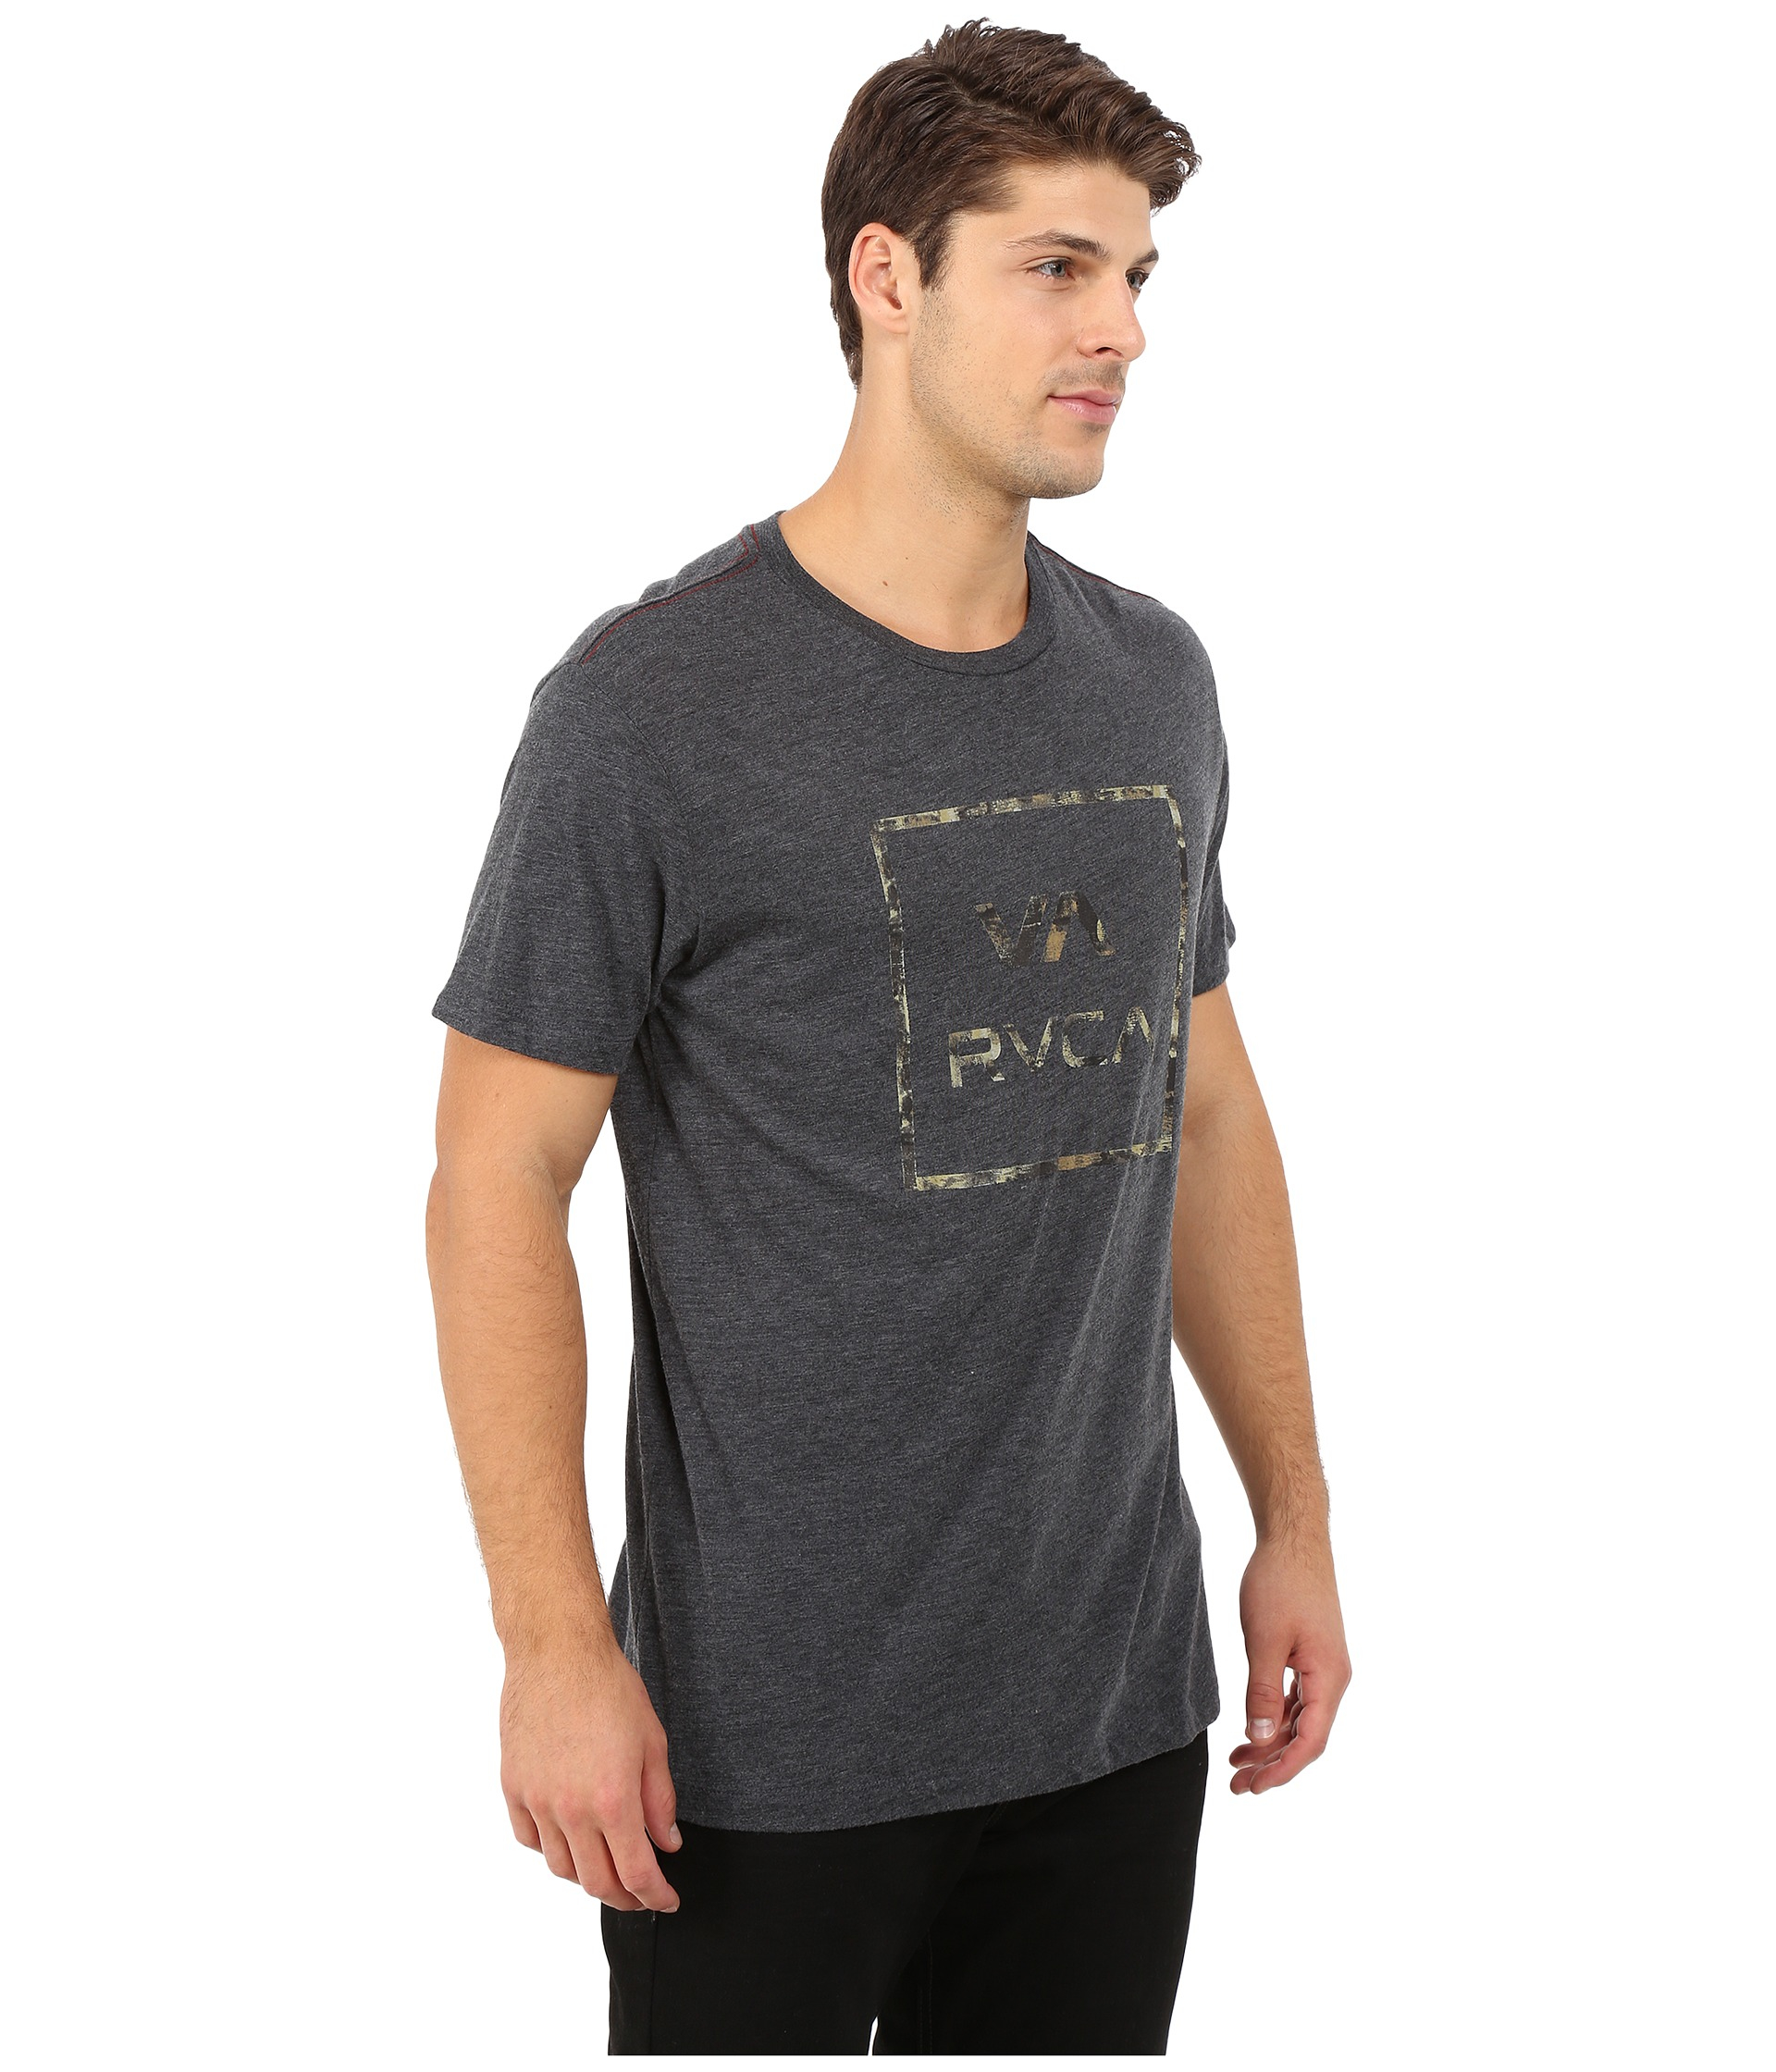 0a967a837cc Lyst - RVCA Shelton All The Way Tee in Black for Men